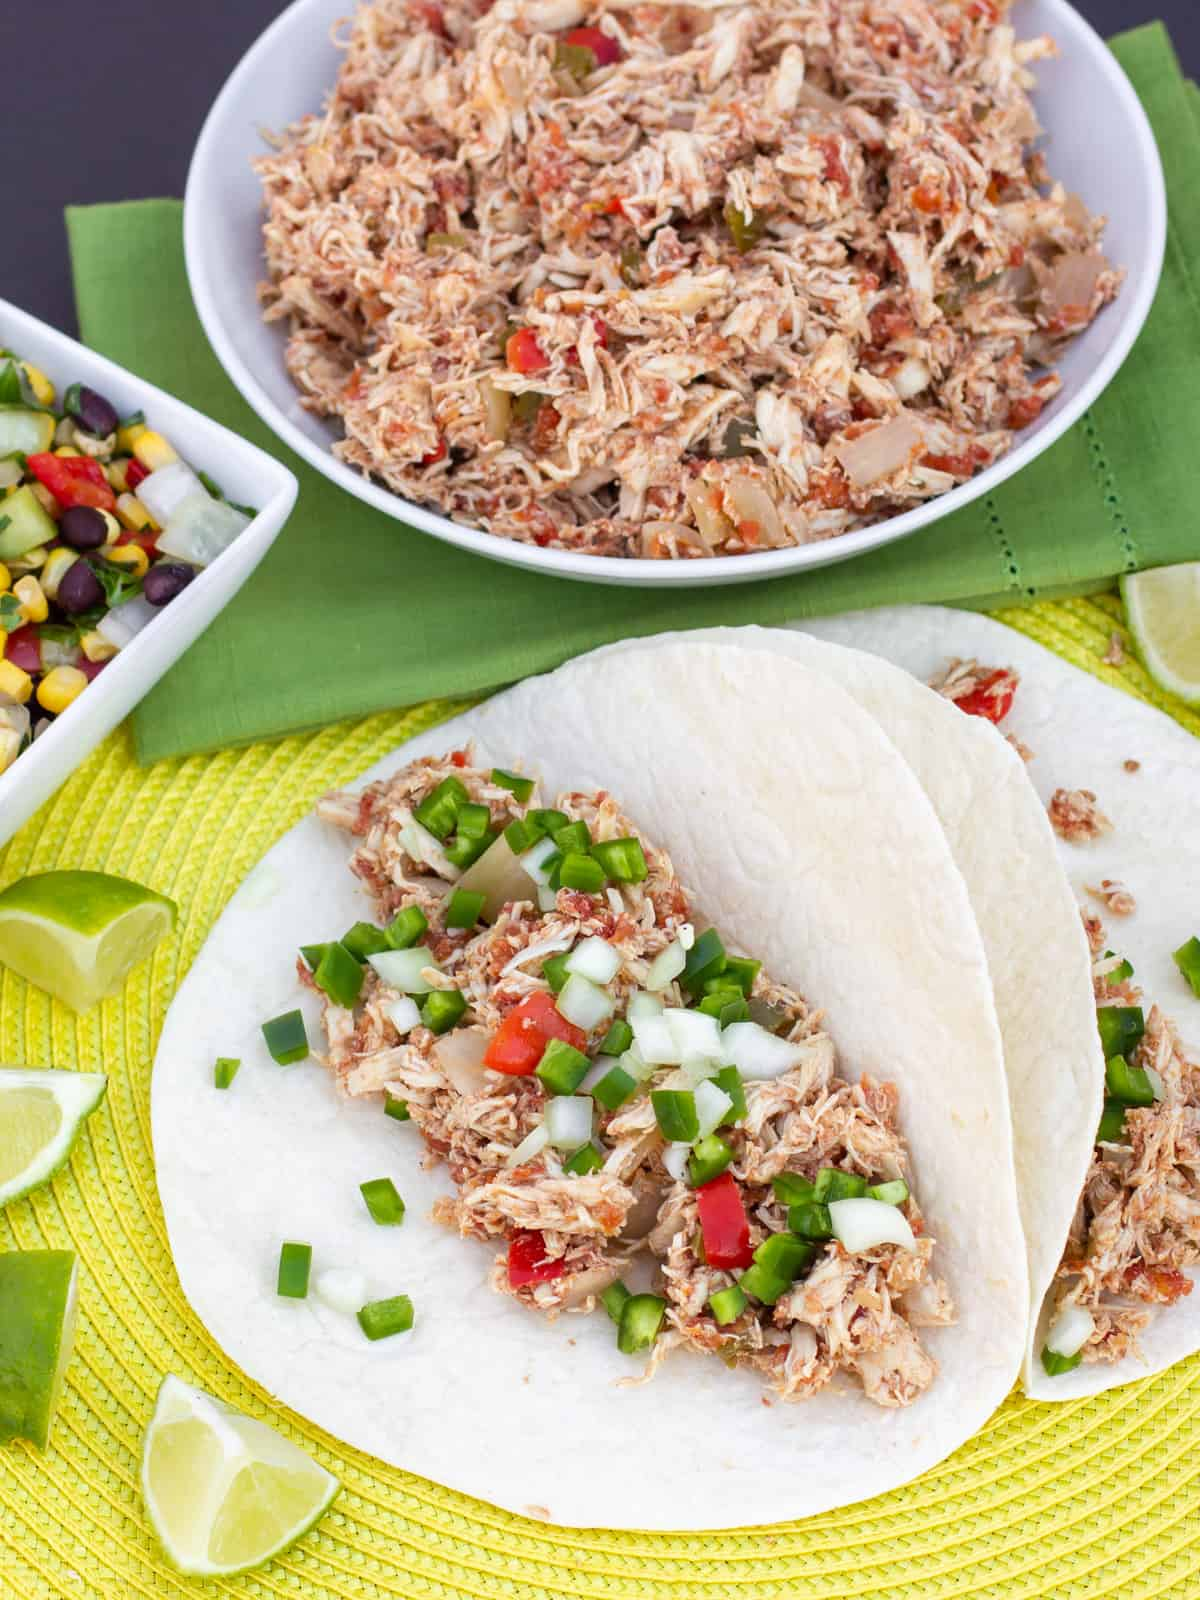 Slow cooker chicken carnitas topped with diced peppers and onions.